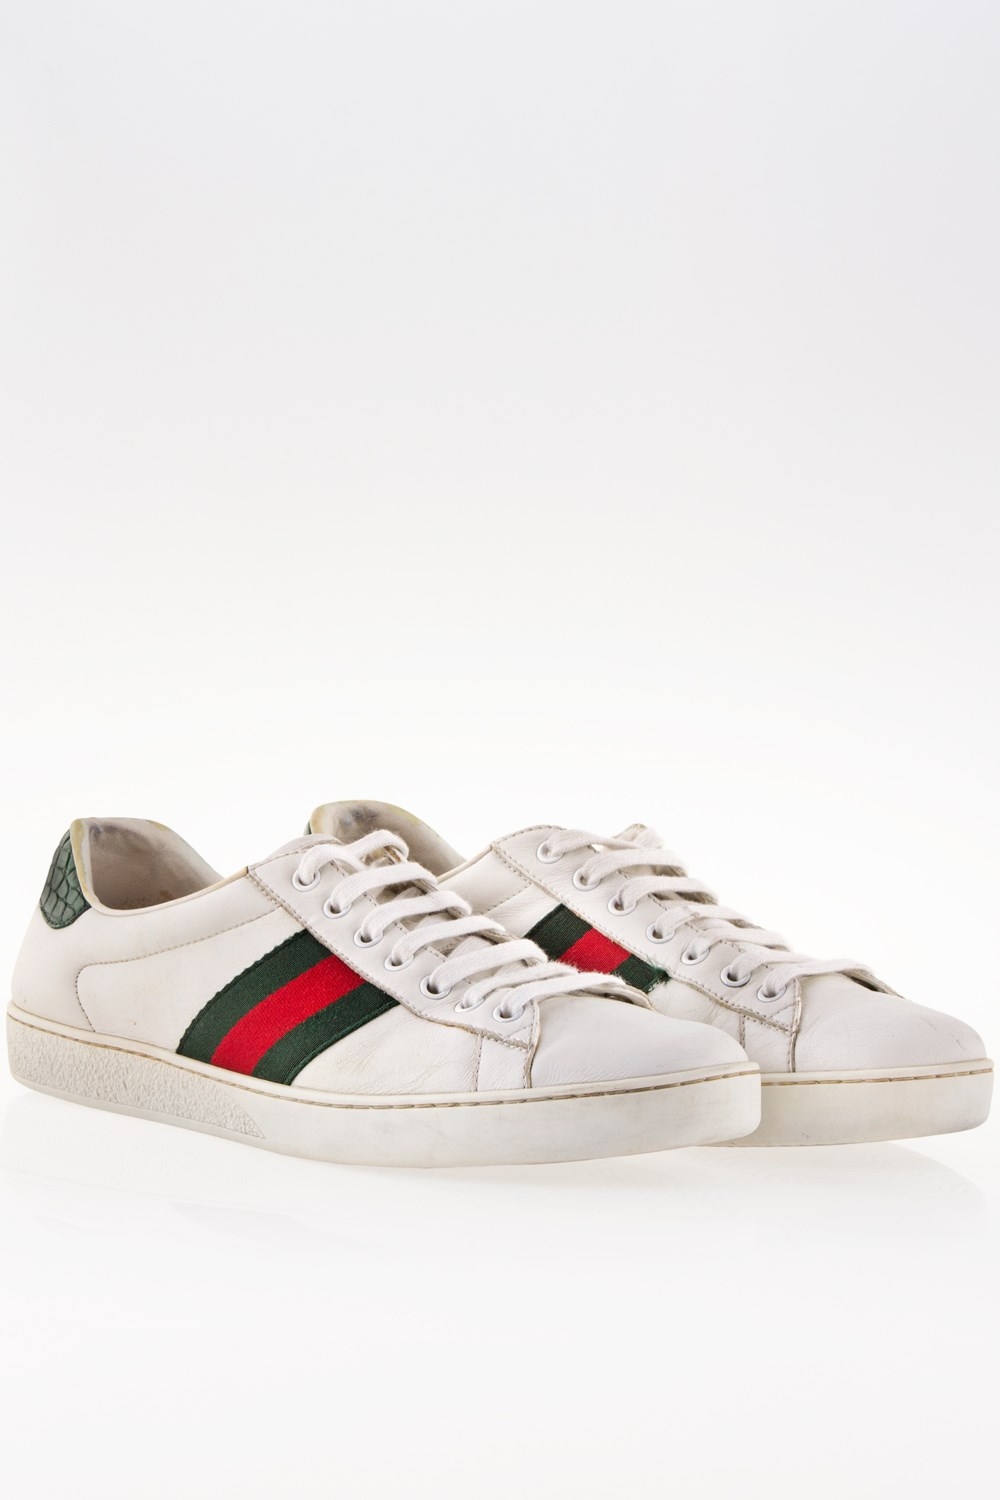 a8783b4852 Ace Αντρικά Λευκά Δερμάτινα Sneakers   Μέγεθος  8 US (41.5 ...